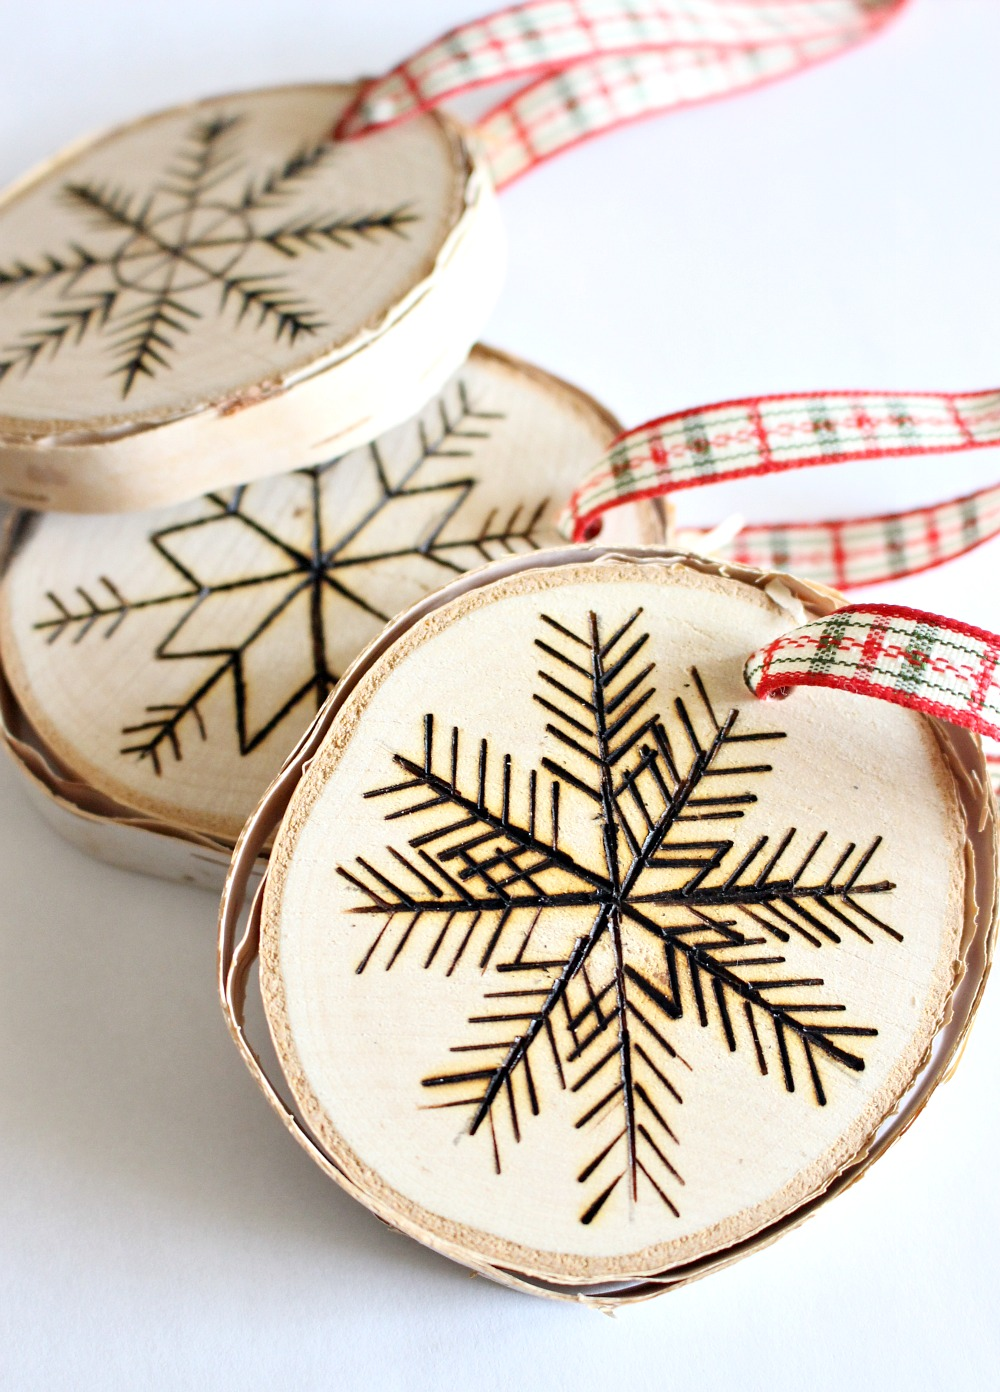 DIY birch slice ornaments with wood burned designs